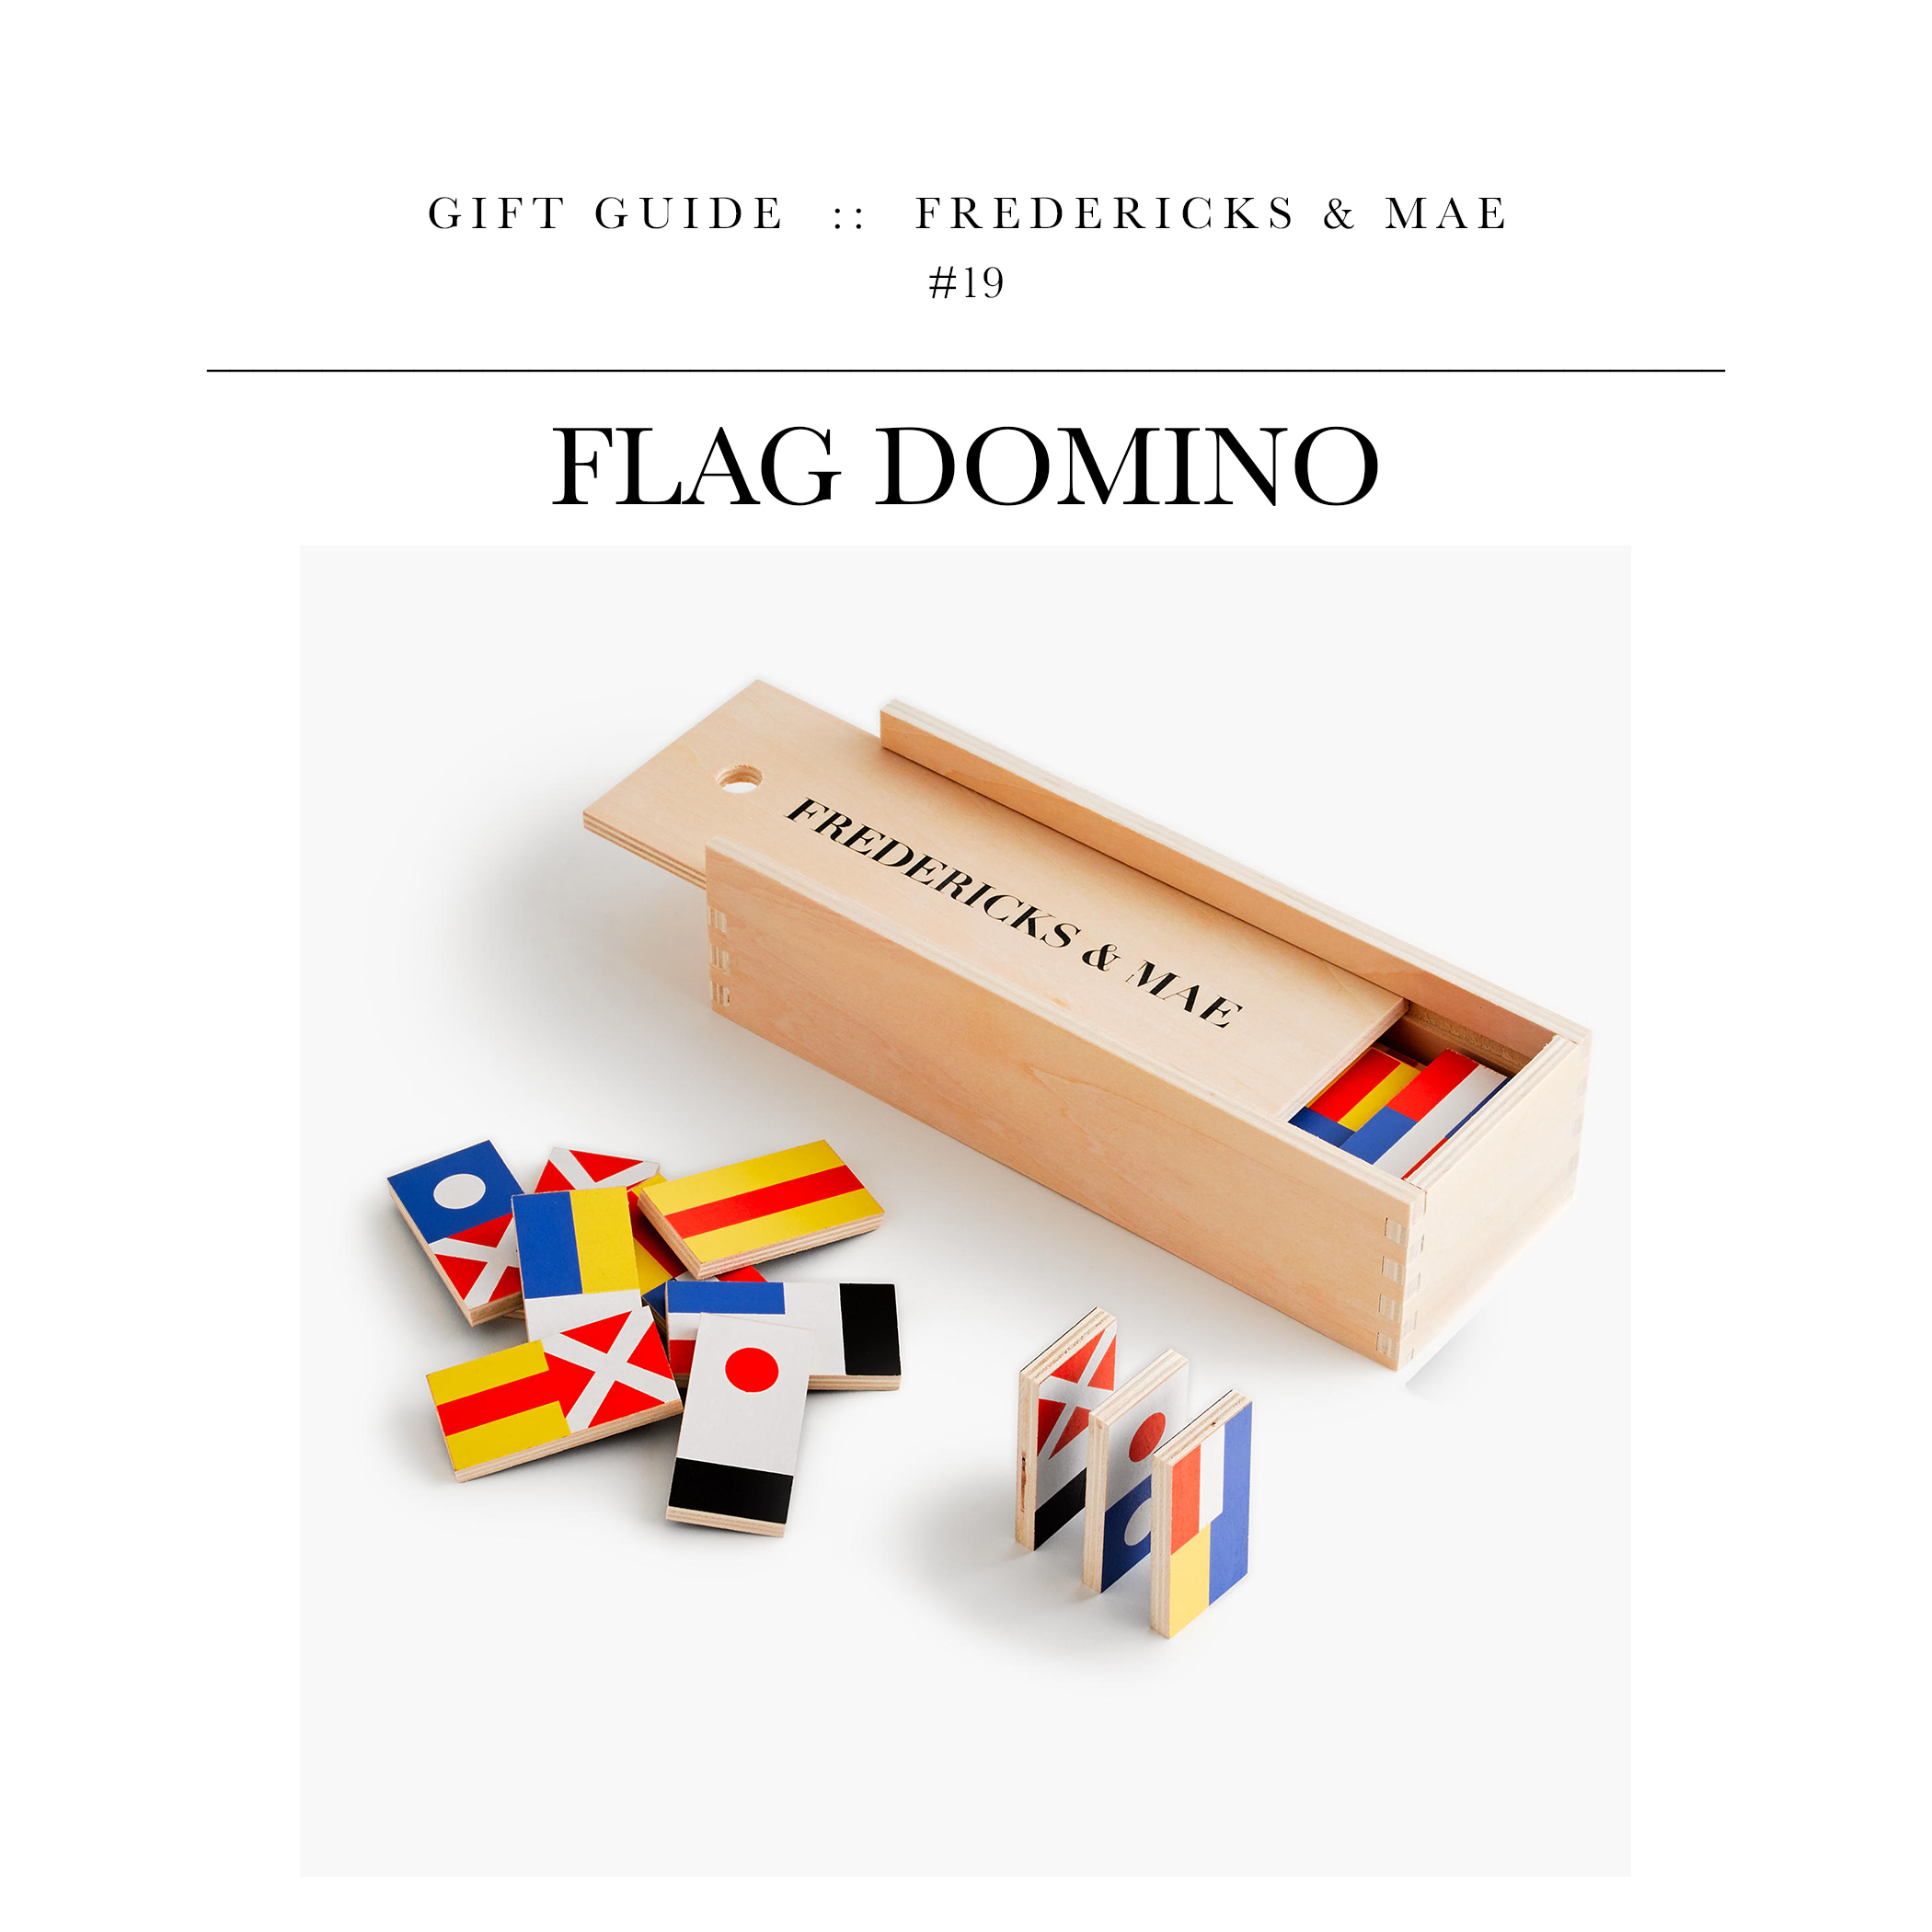 Flag Domino  via Fredericks & Mae // A fun gift for the guy who likes to game.